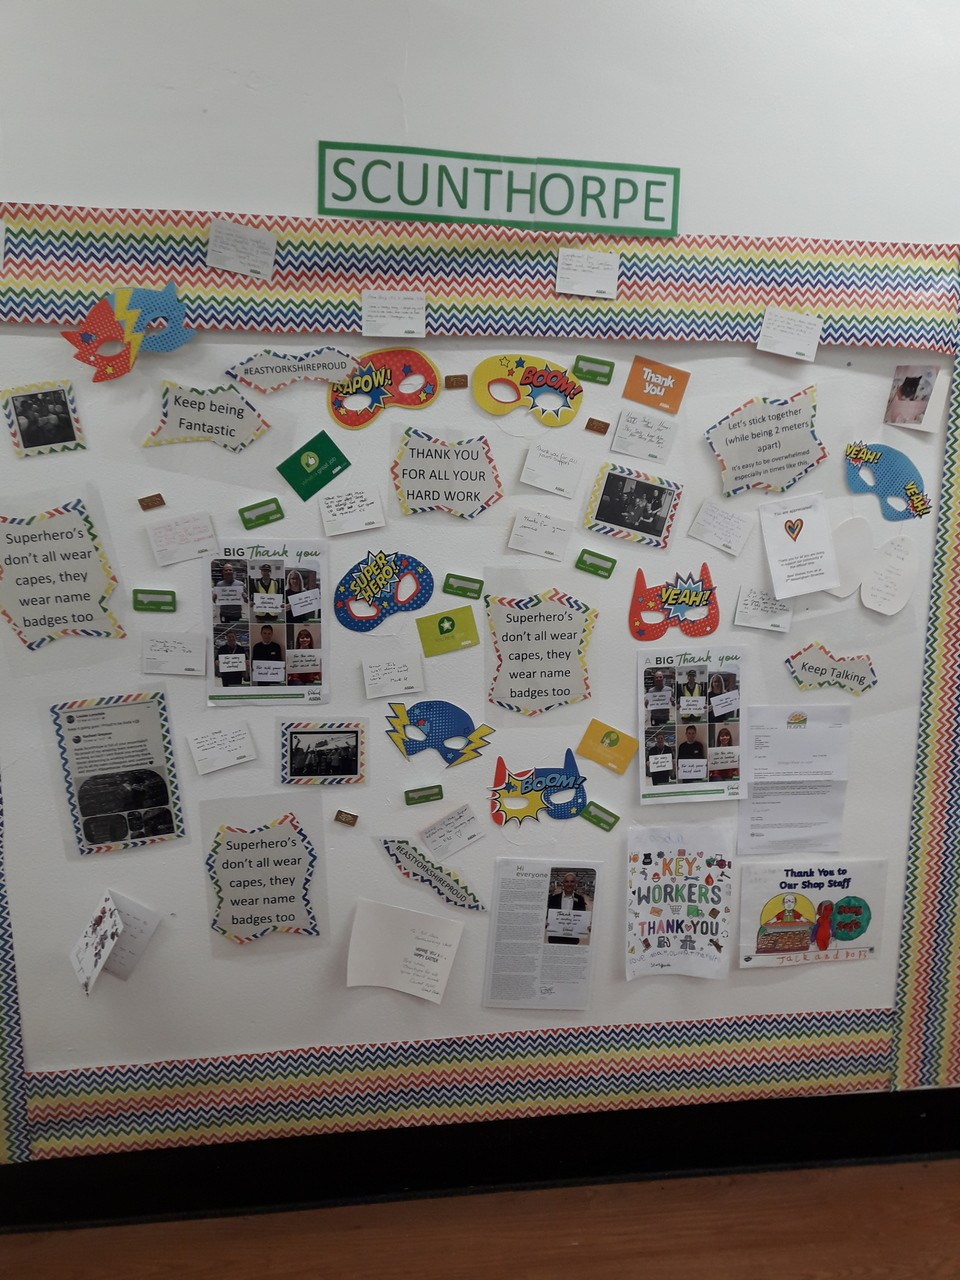 Saying thank you to us all at Scunthorpe | Asda Scunthorpe